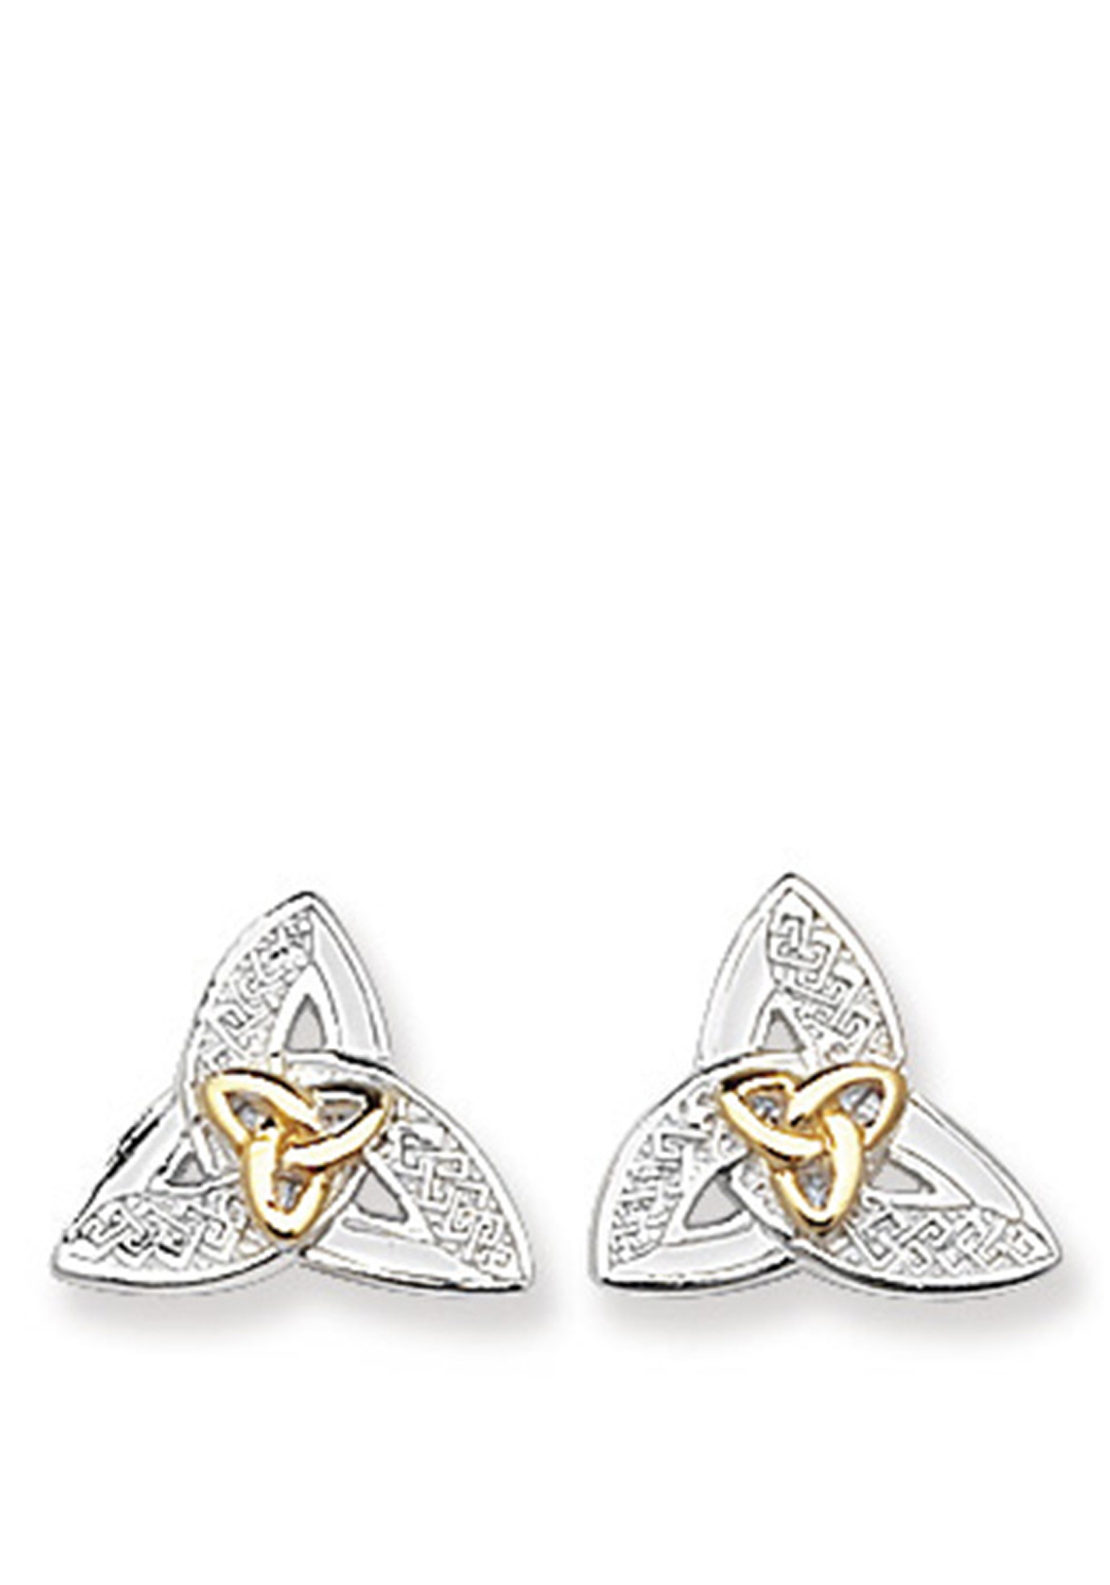 Sterling Silver & Gold Plated Celtic Stud Earrings